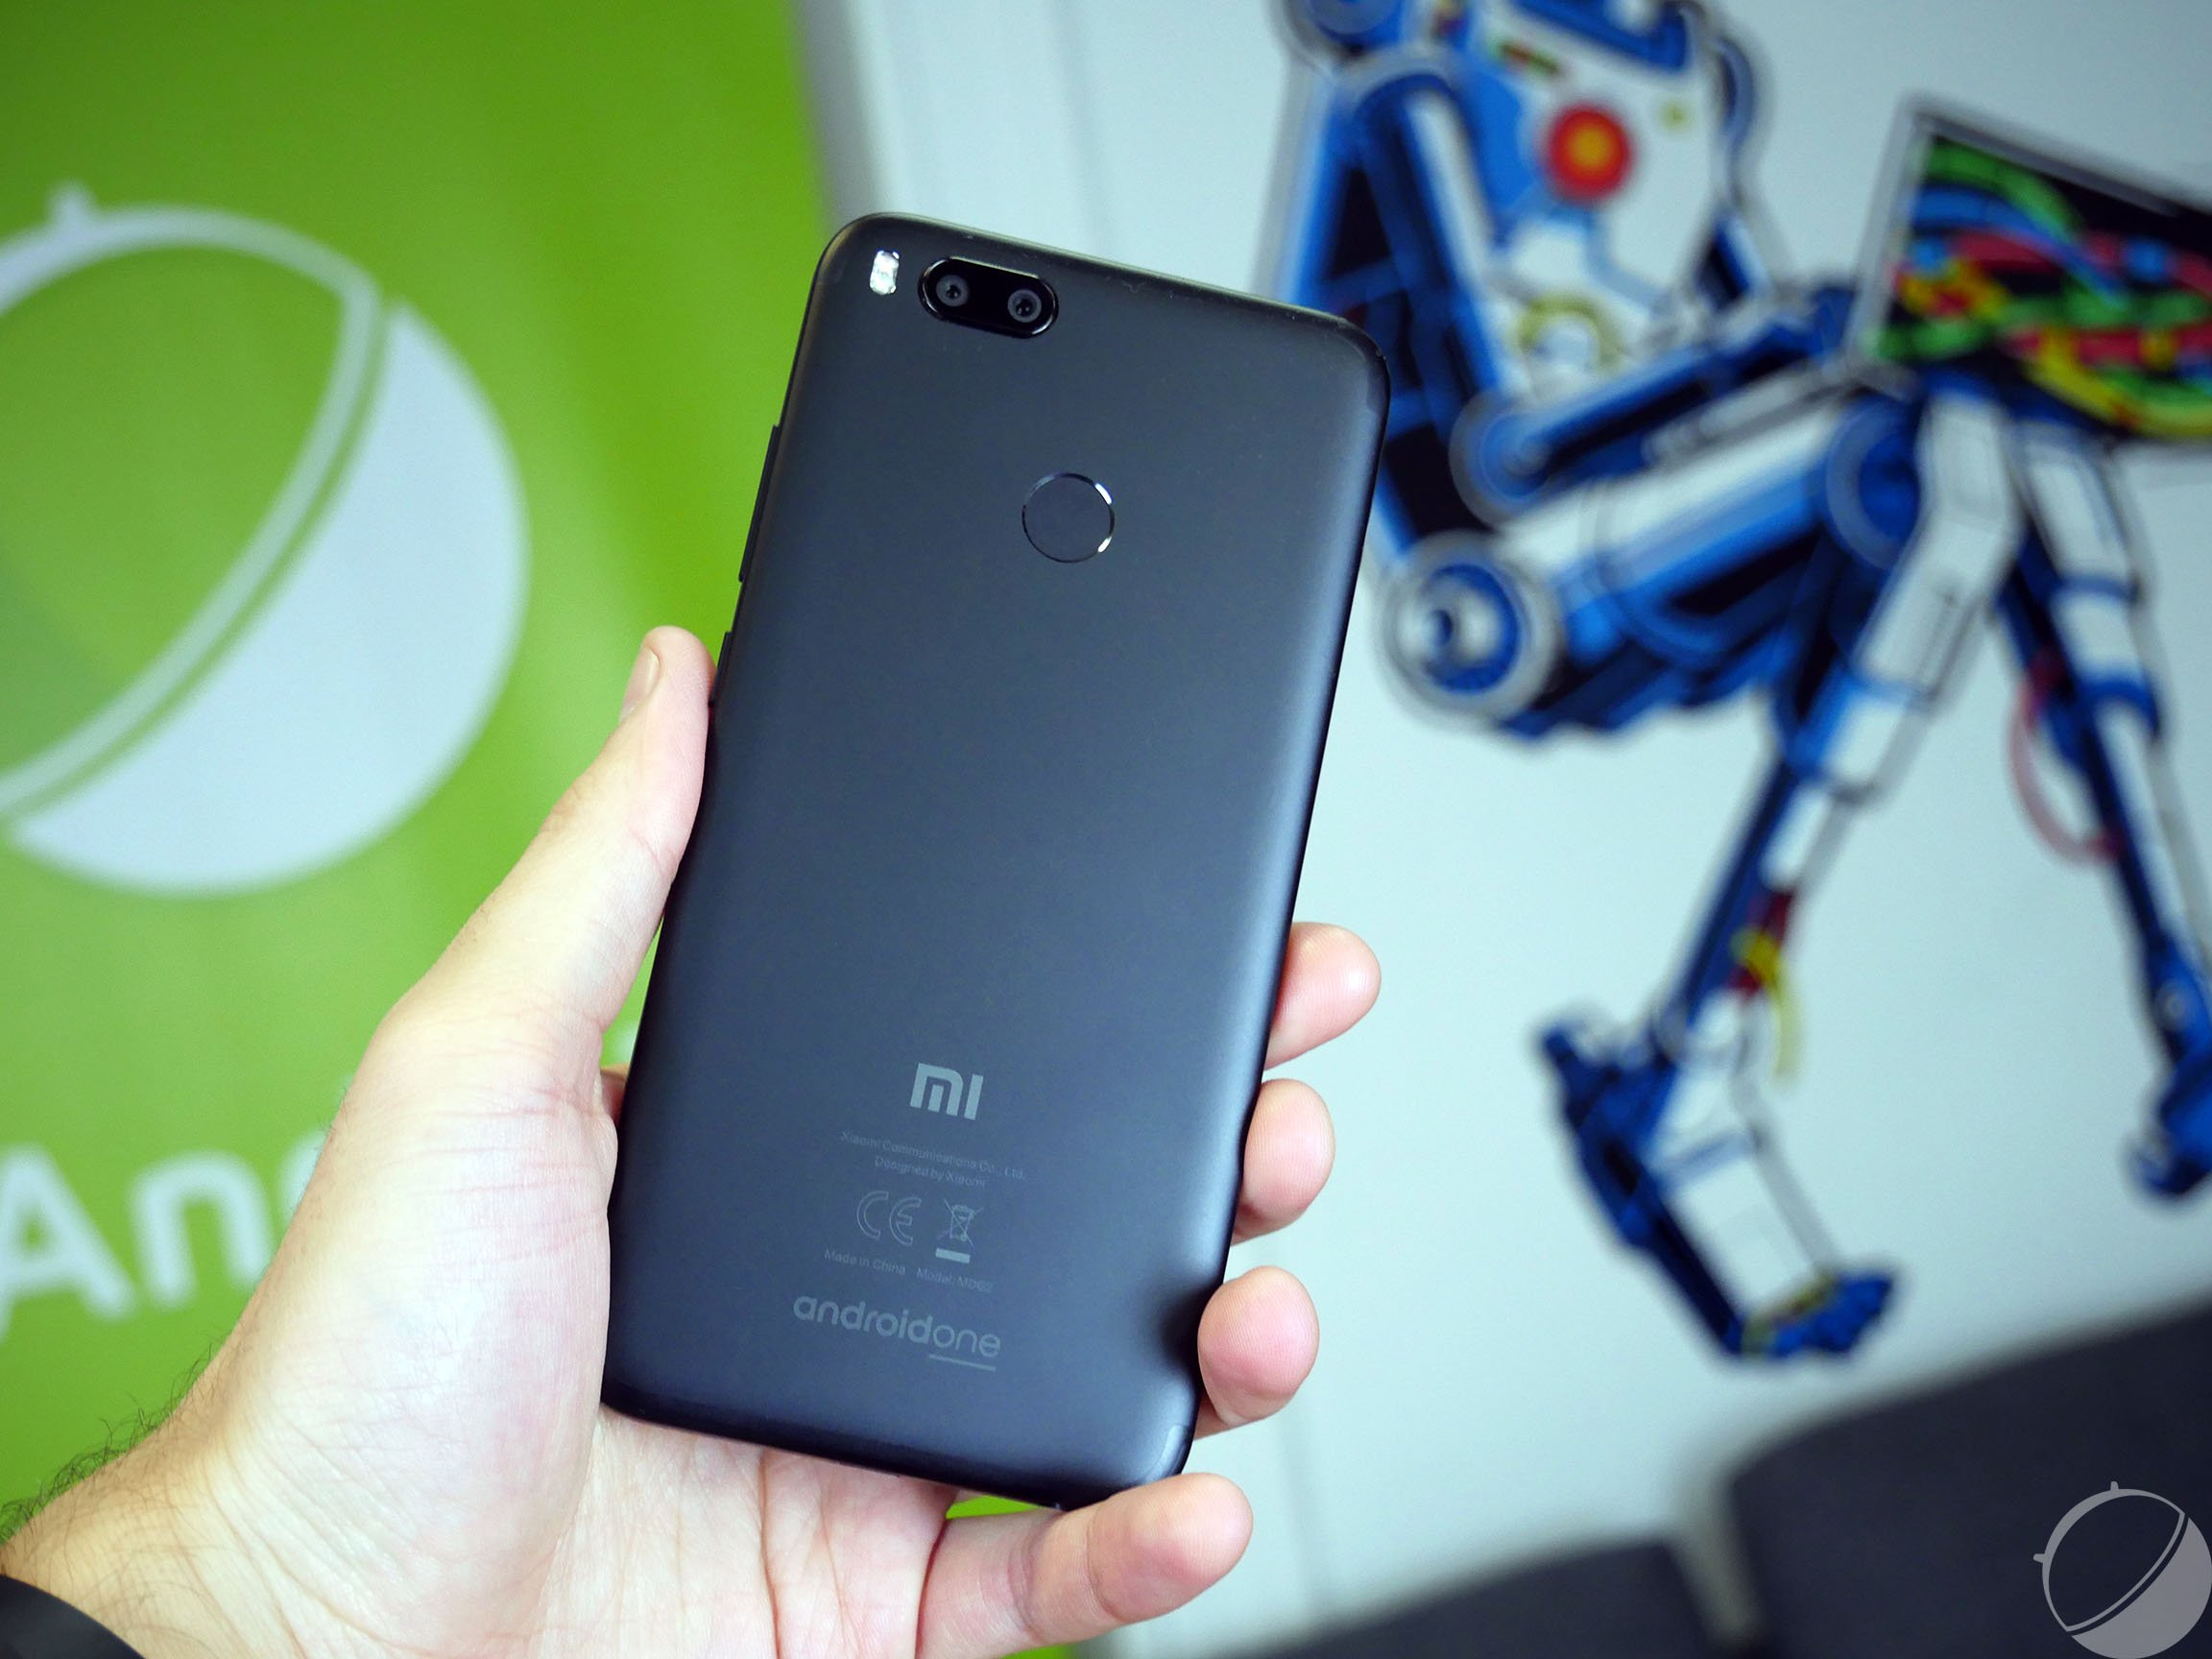 Xiaomi Mi A1 : le 1er smartphone sous Android One reçoit Android 8.0 Oreo en bêta - FrAndroid